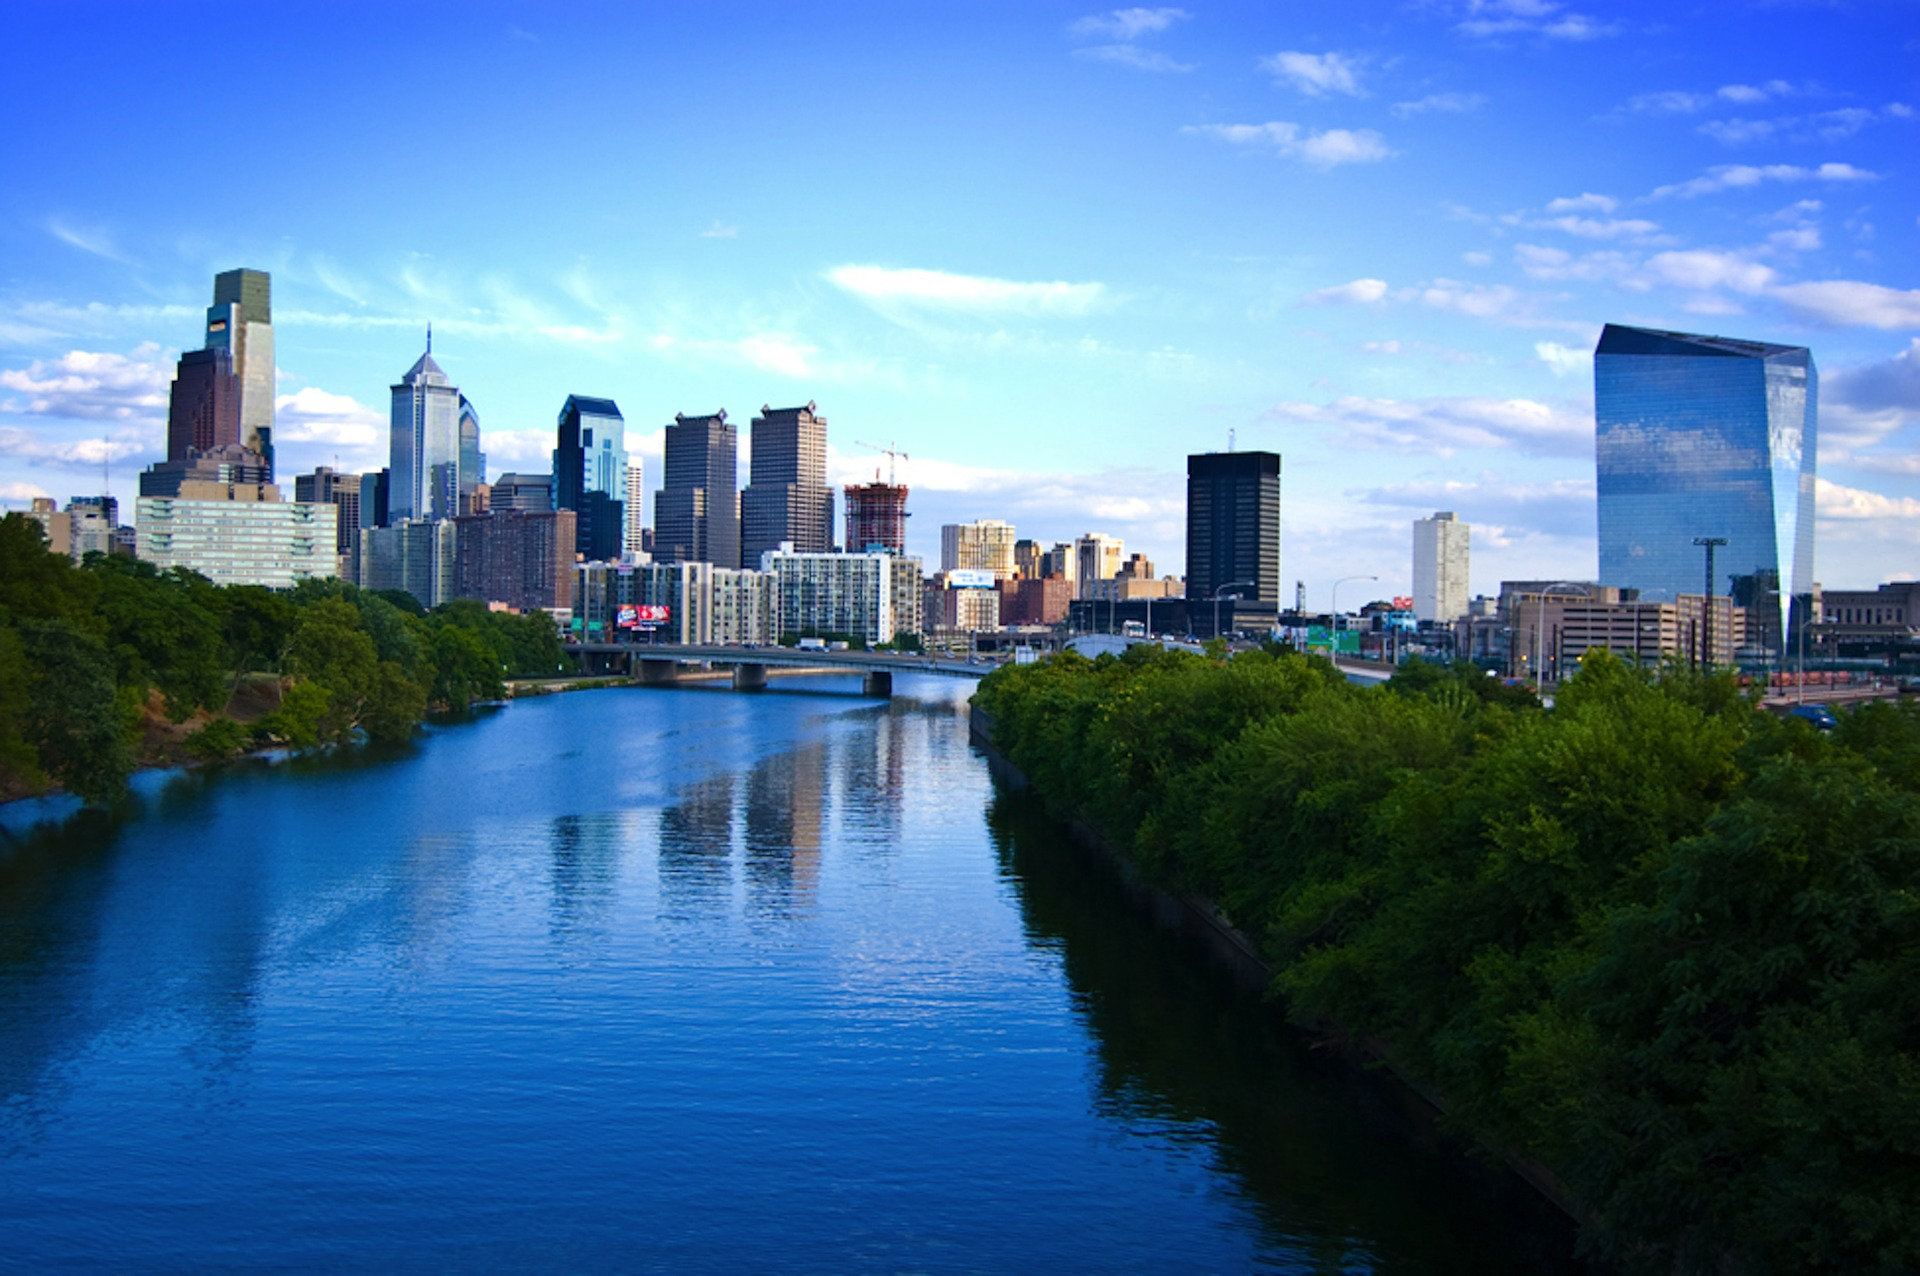 philadelphia 70850 1920 Where to Go In 2020: 10 of the Best Places to Travel in the United States